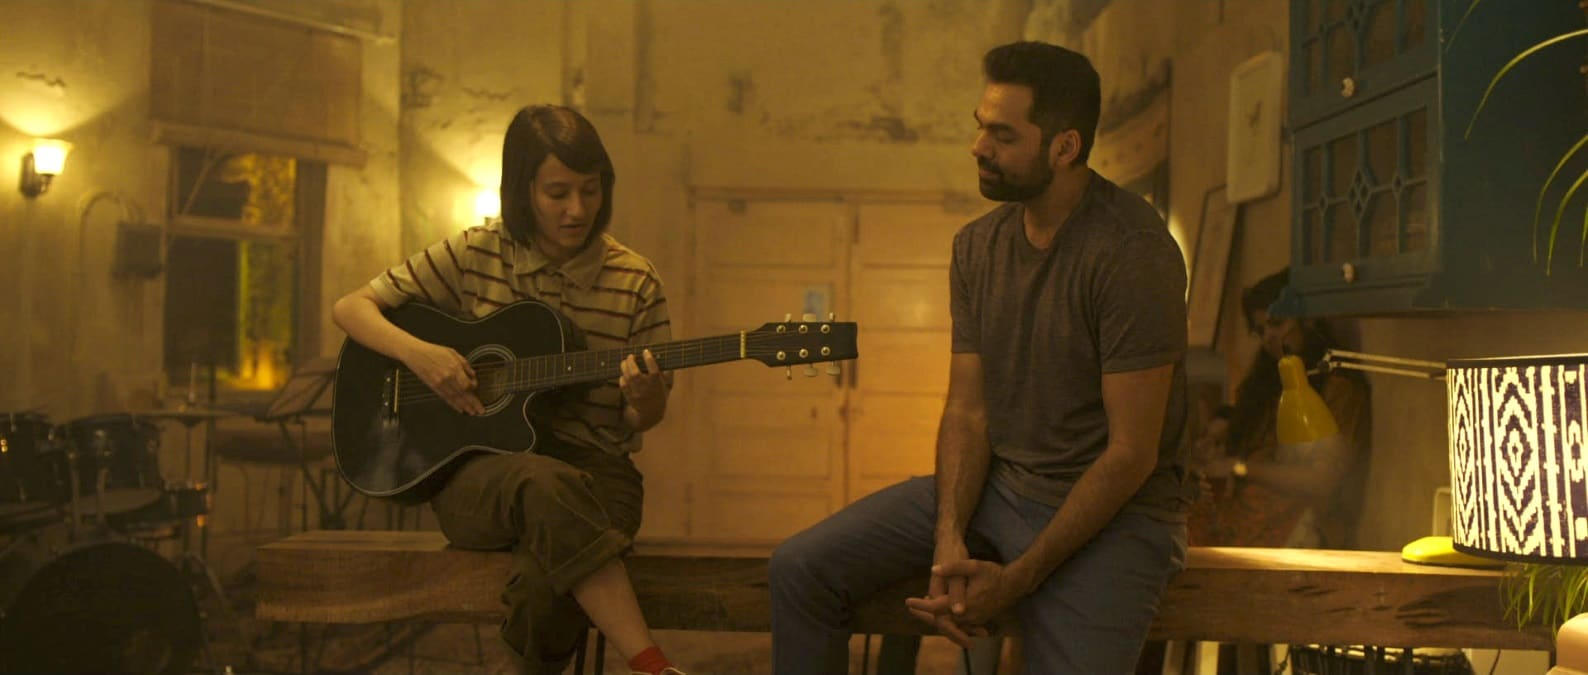 Netflix Unveils Trailer, Release Date for Abhay Deol Movie 'What Are the Odds?'